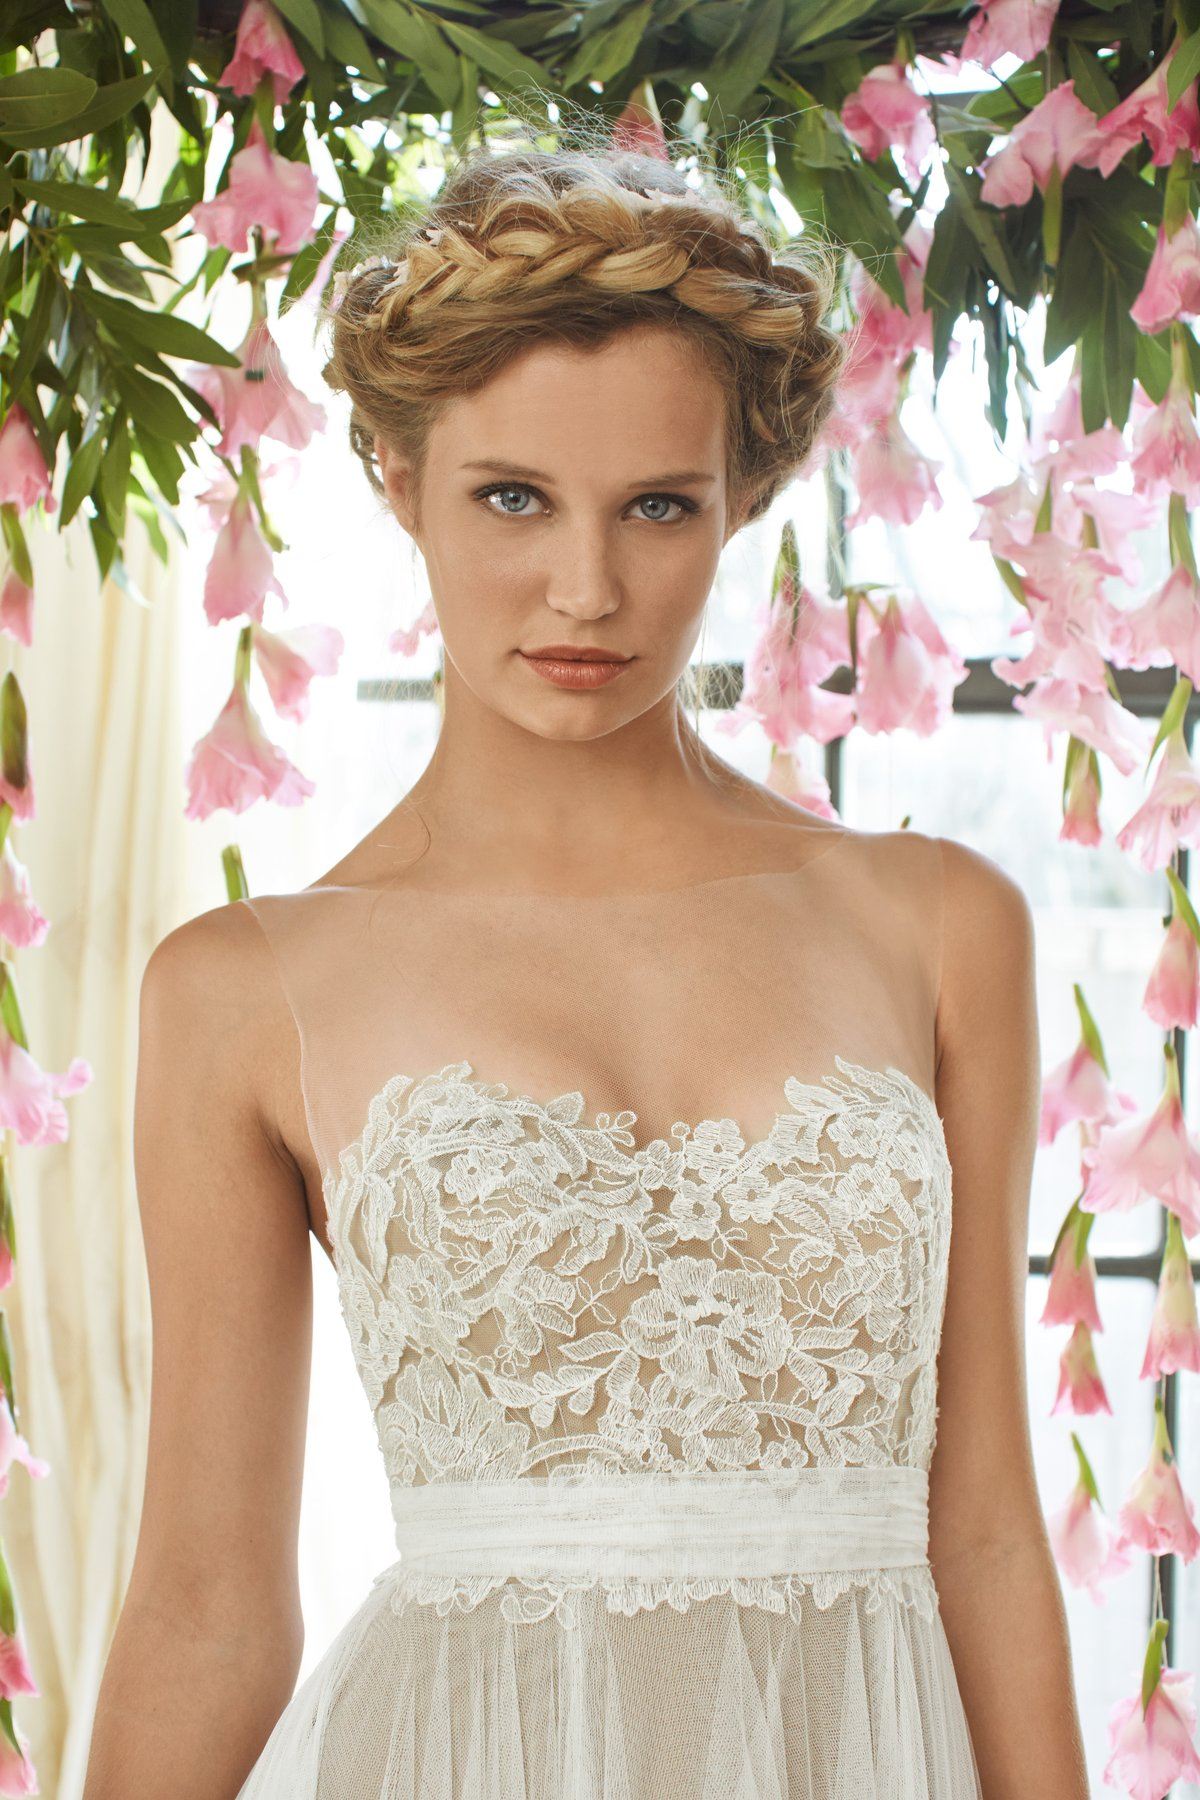 Penelope wedding dress images